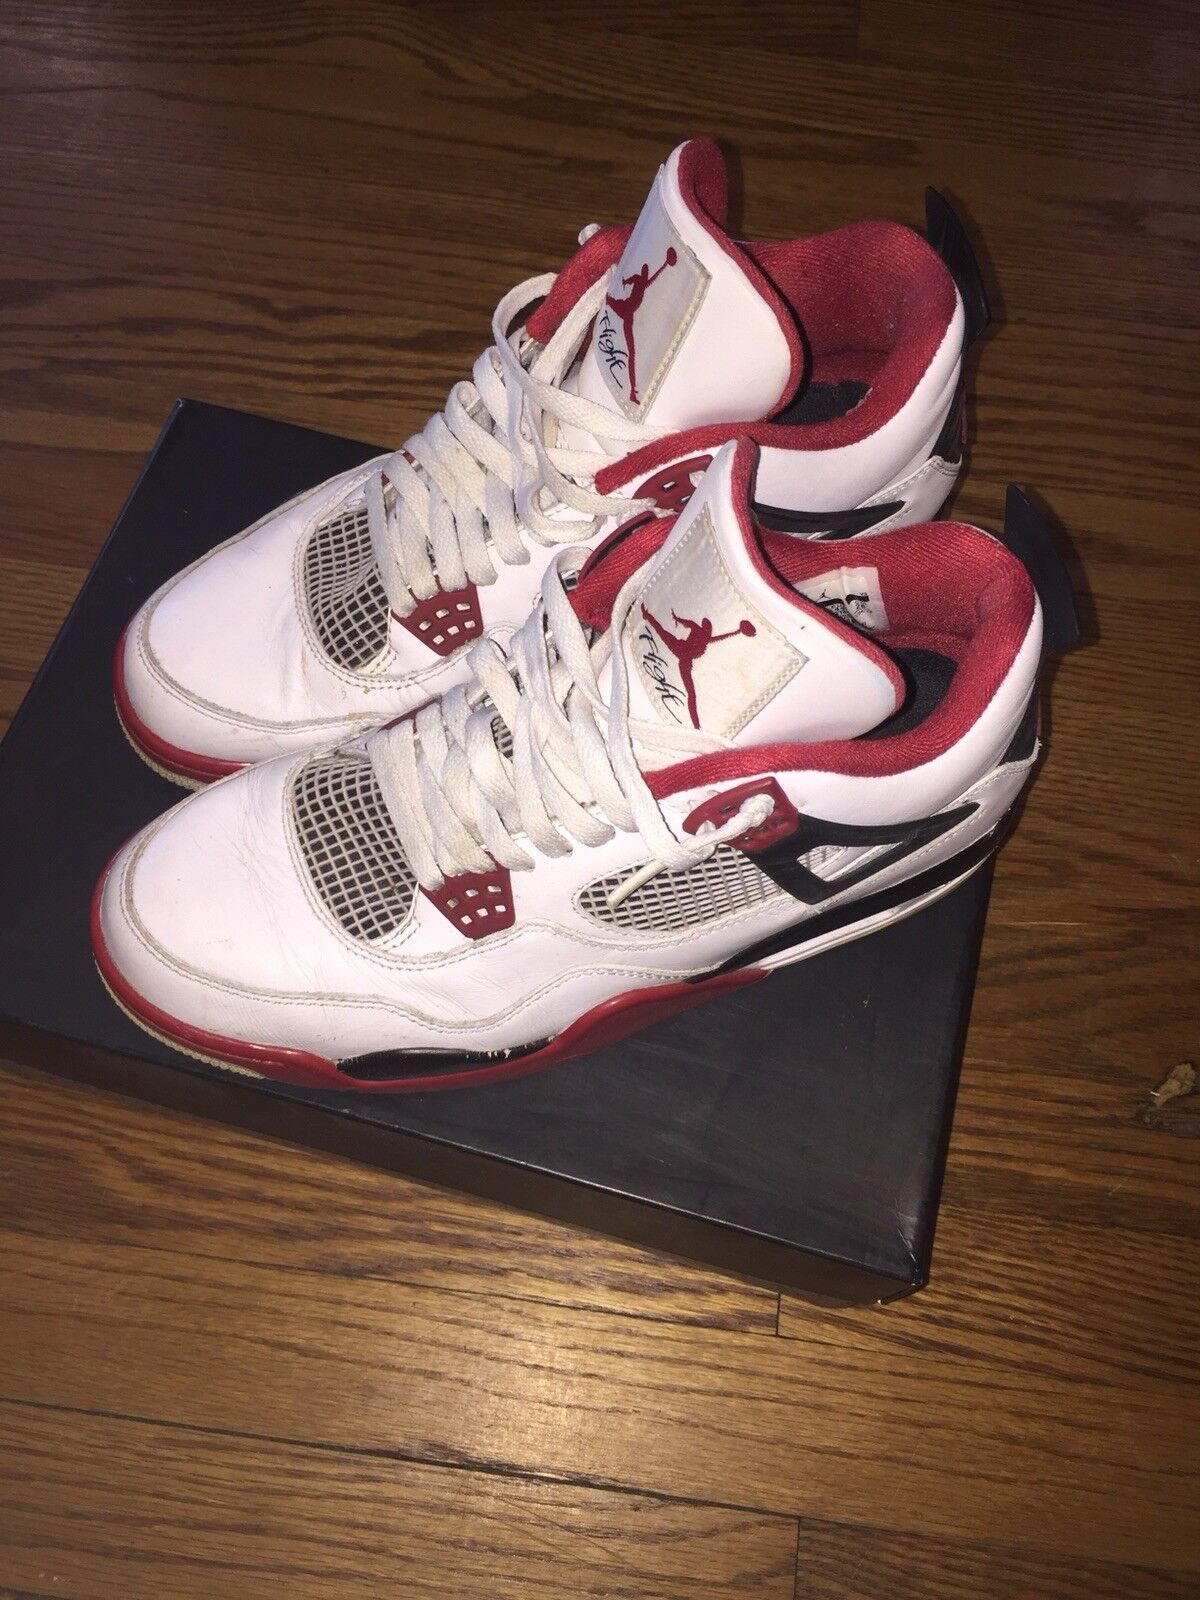 Air Jordan 4 Fire Red  Comfortable New shoes for men and women, limited time discount